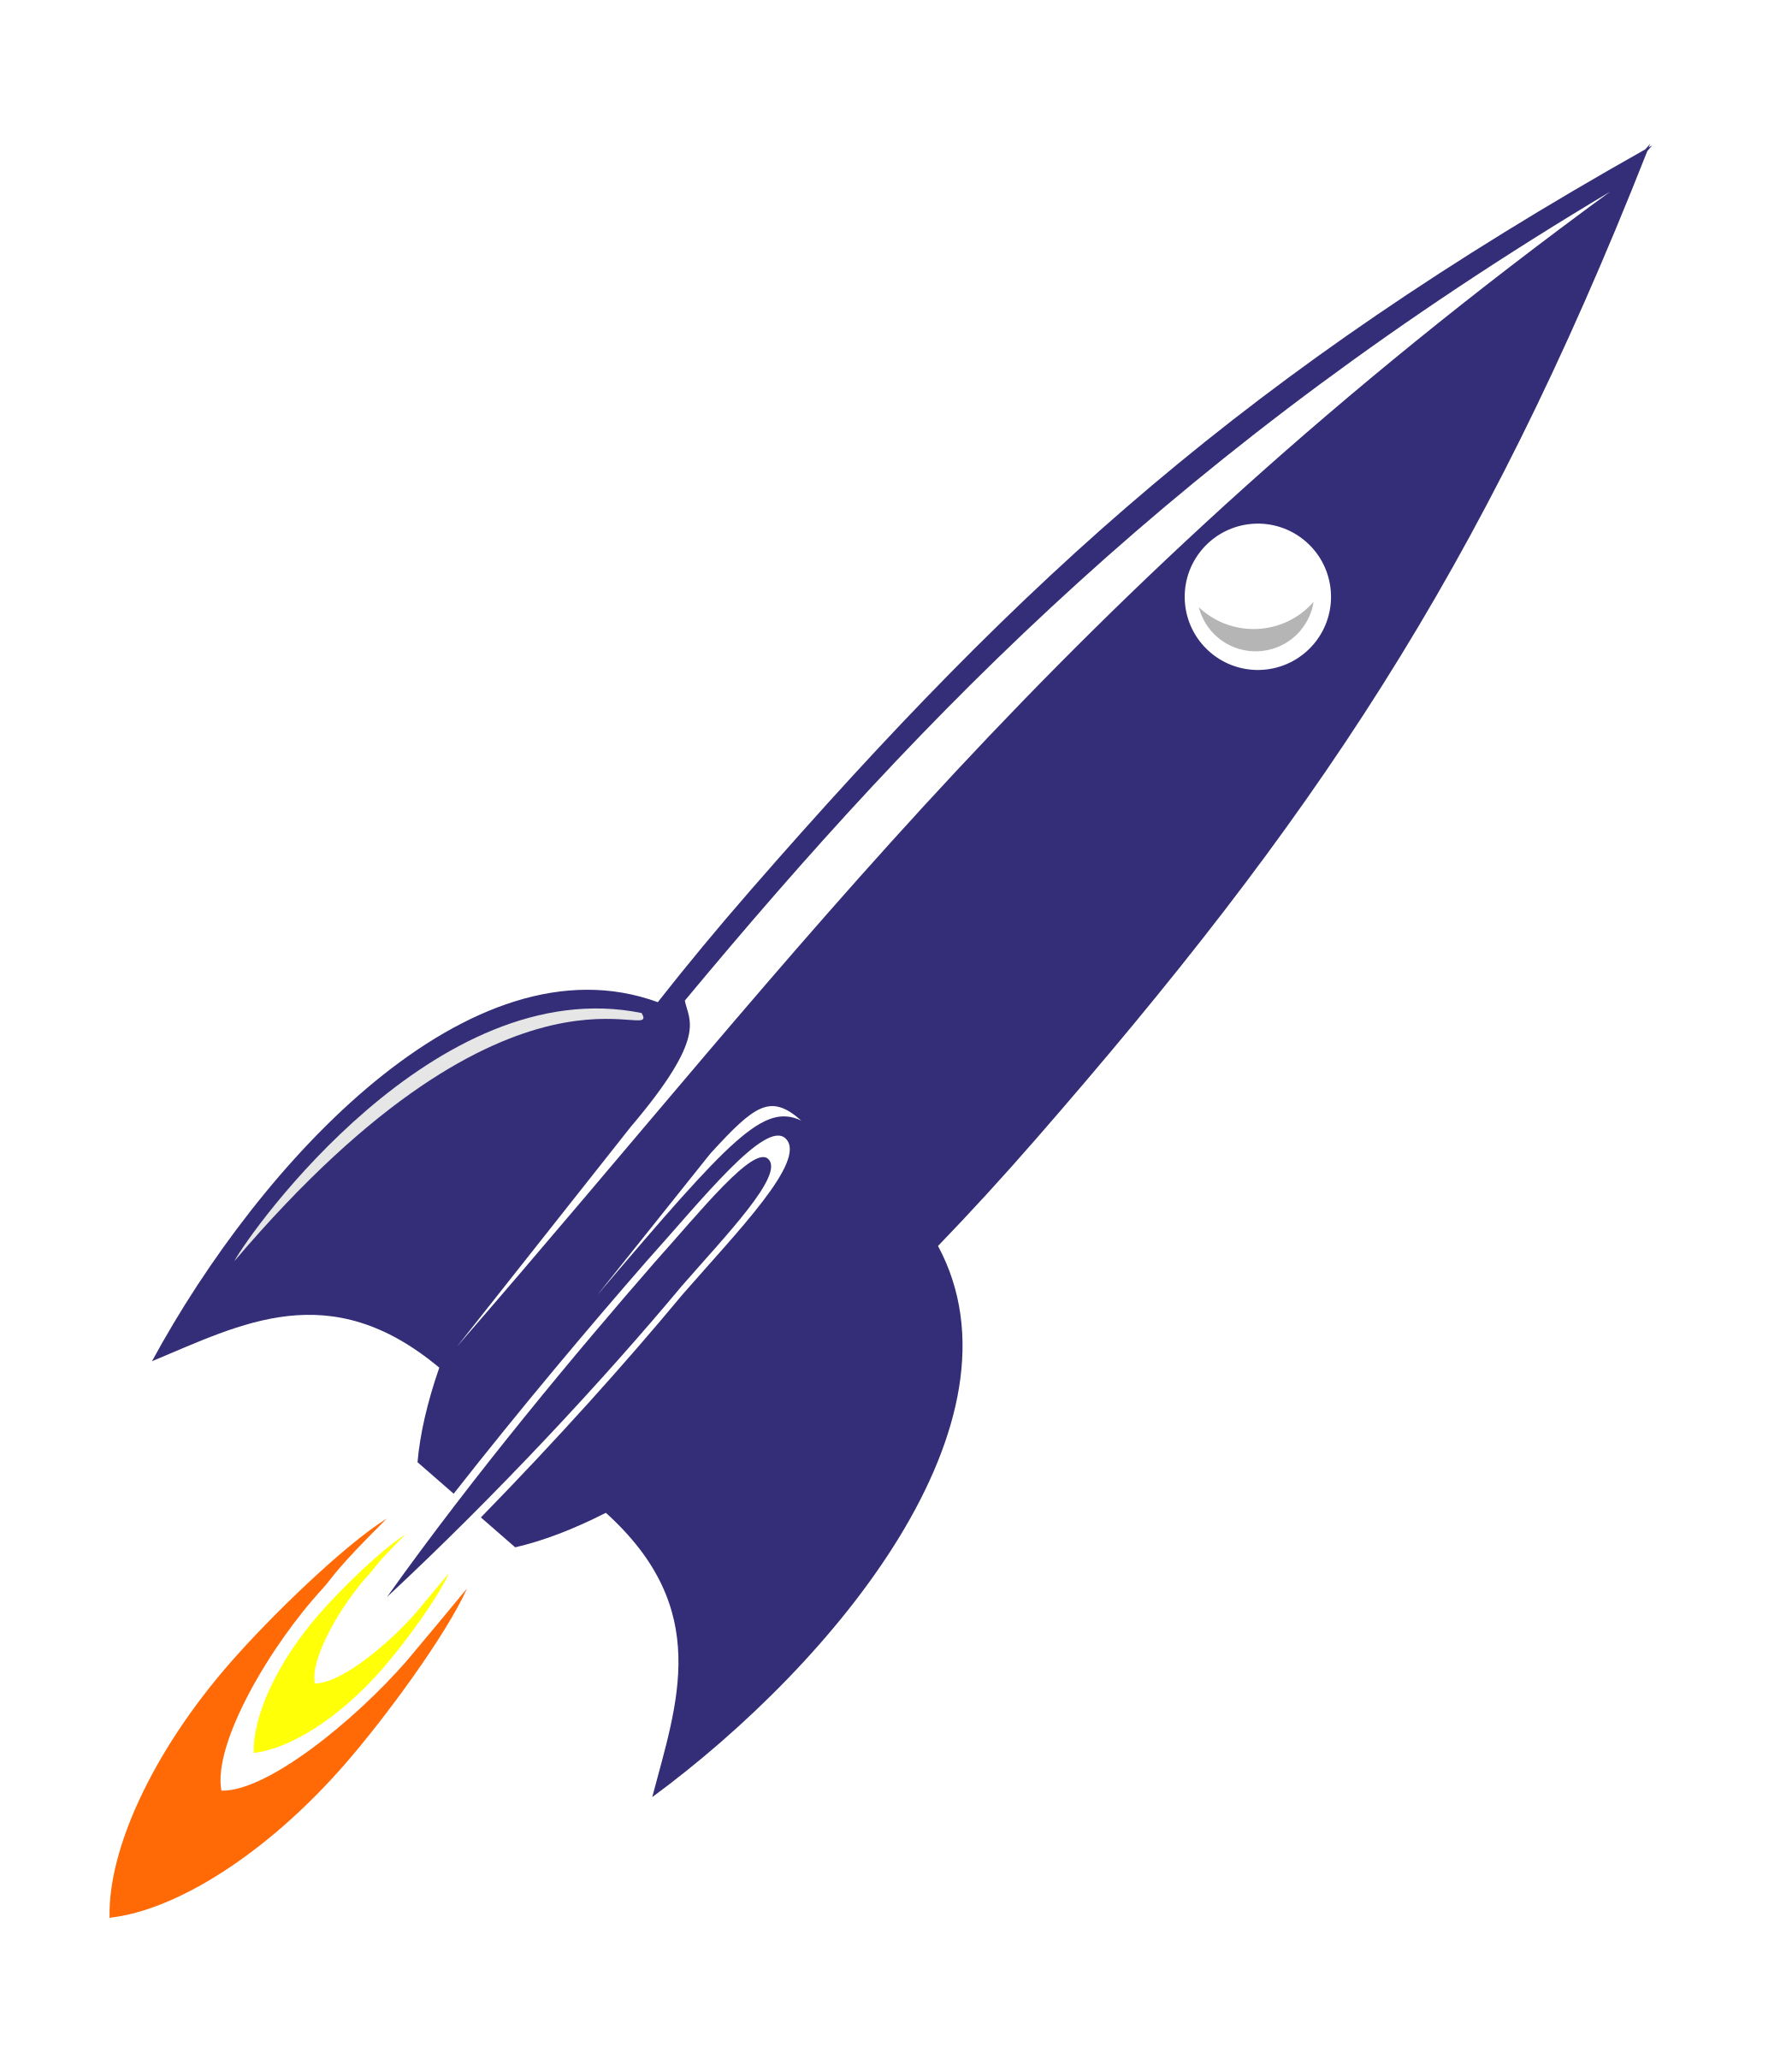 Thrust force clipart images.